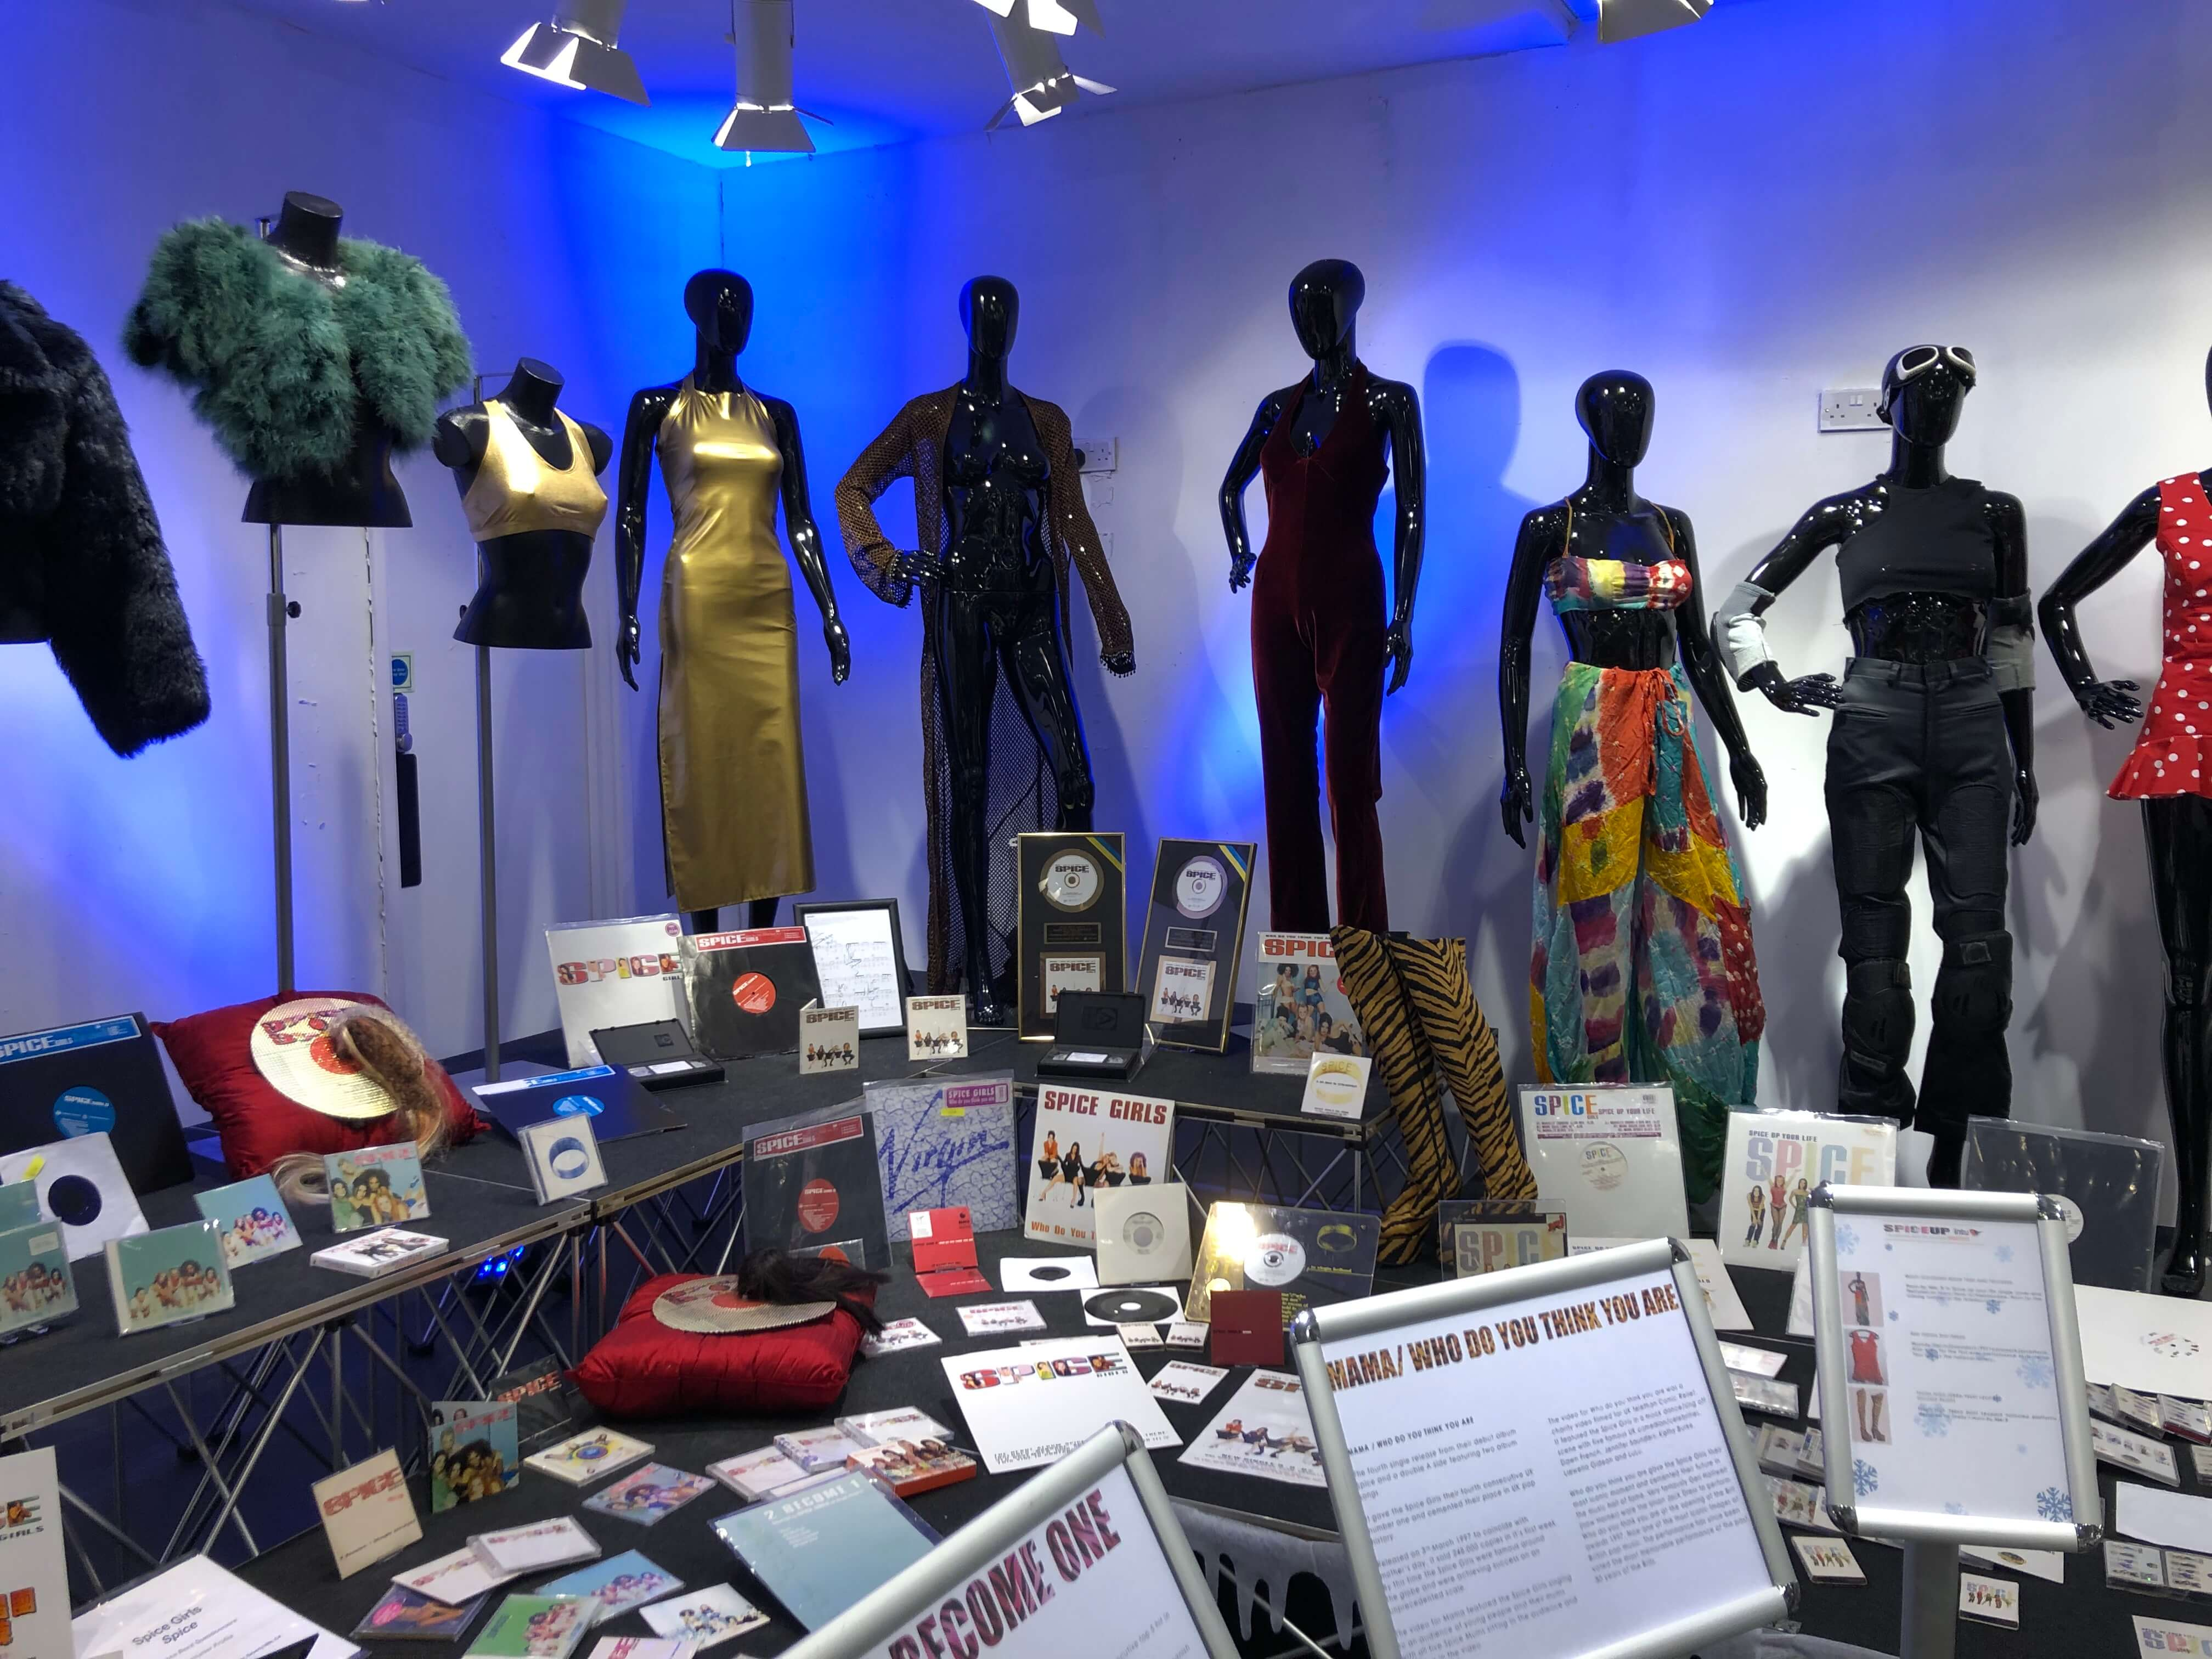 Outfits from the spice girls exhibition